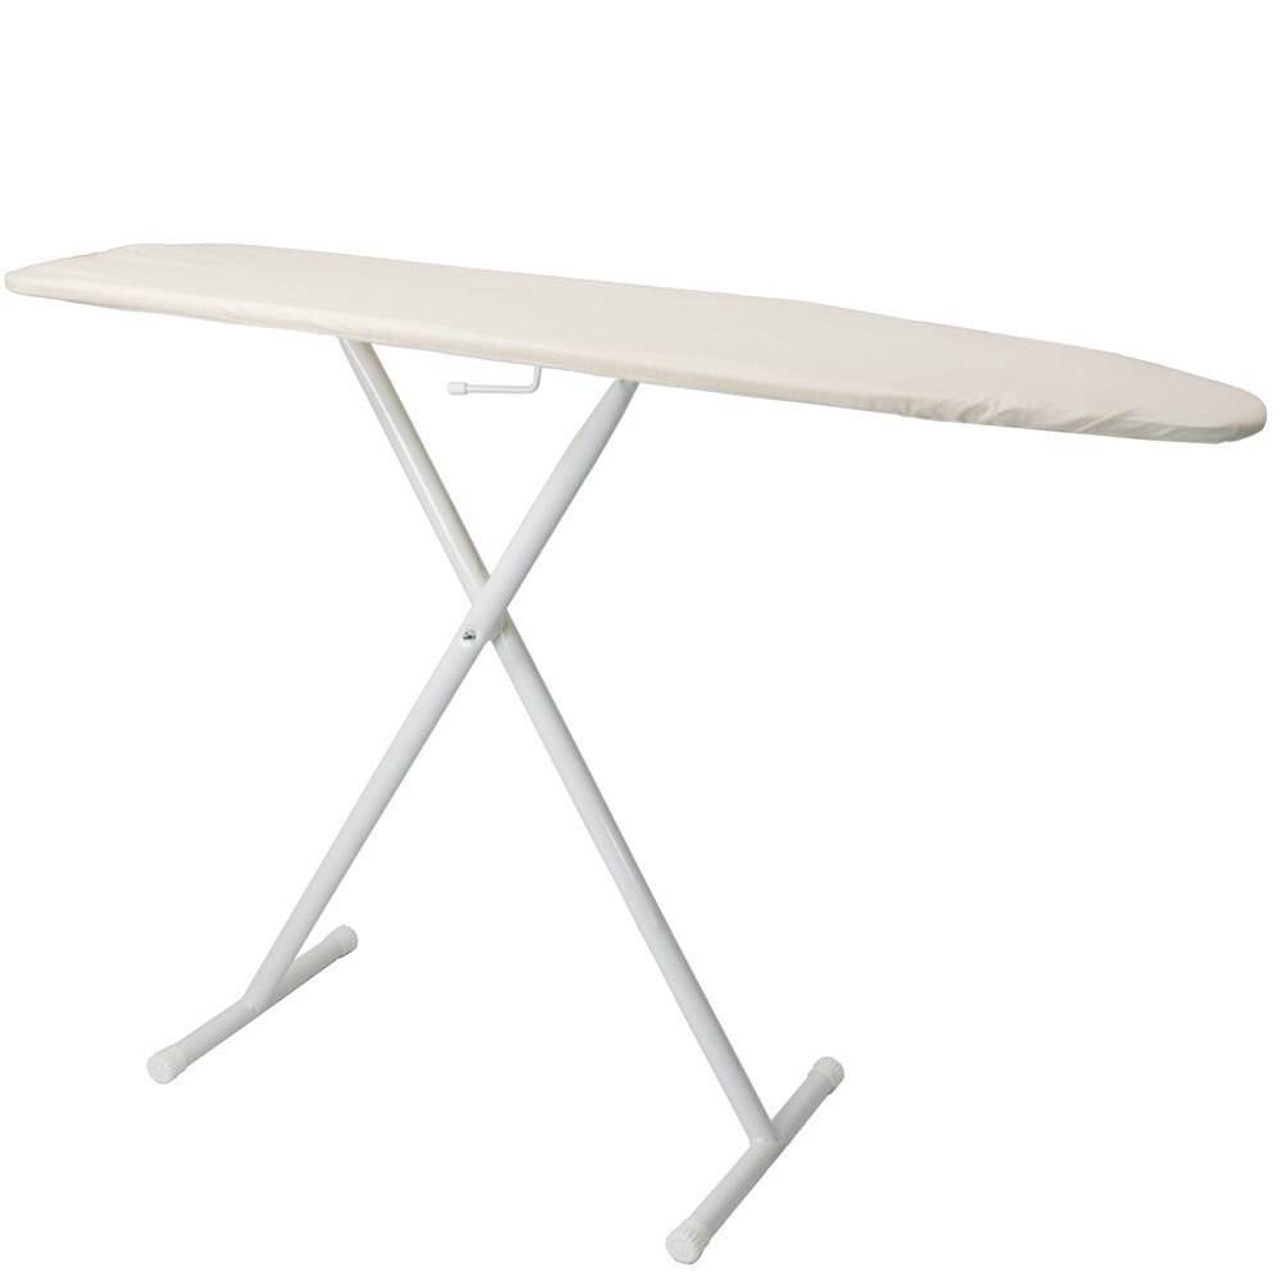 HOSPITALITY 1 SOURCE HOSPITALITY 1 SOURCE or PREMIUM IRONING BOARD or LT KHAKI COVER or 53LX13.5W or POWDER COAT WHITE LEGS FINISH or 4 PER CASE